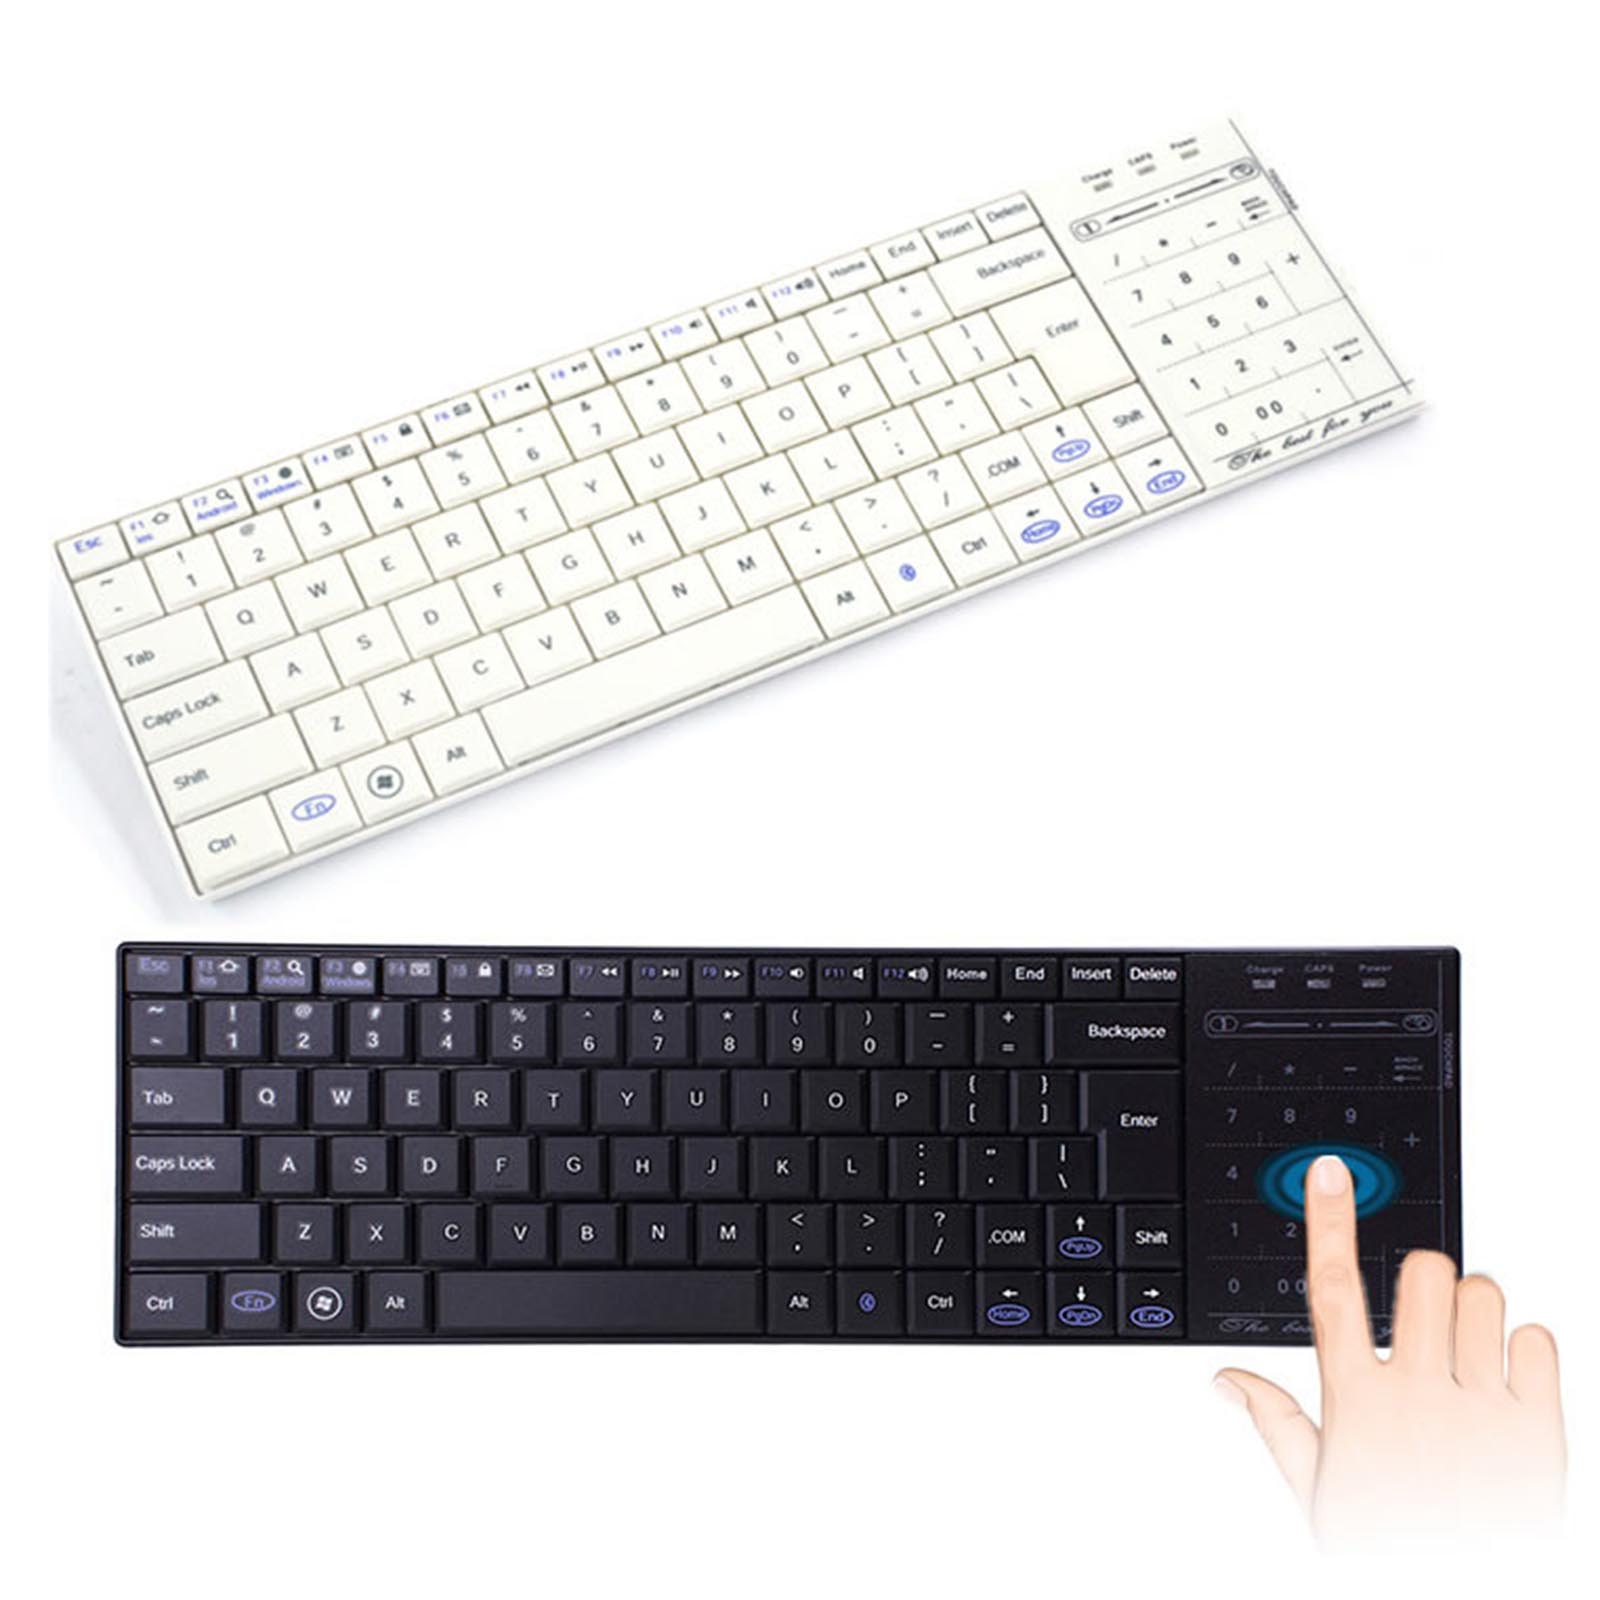 Details about Portable Bluetooth Keyboard For Android IOS Windows 10 With  Touchpad Numeric